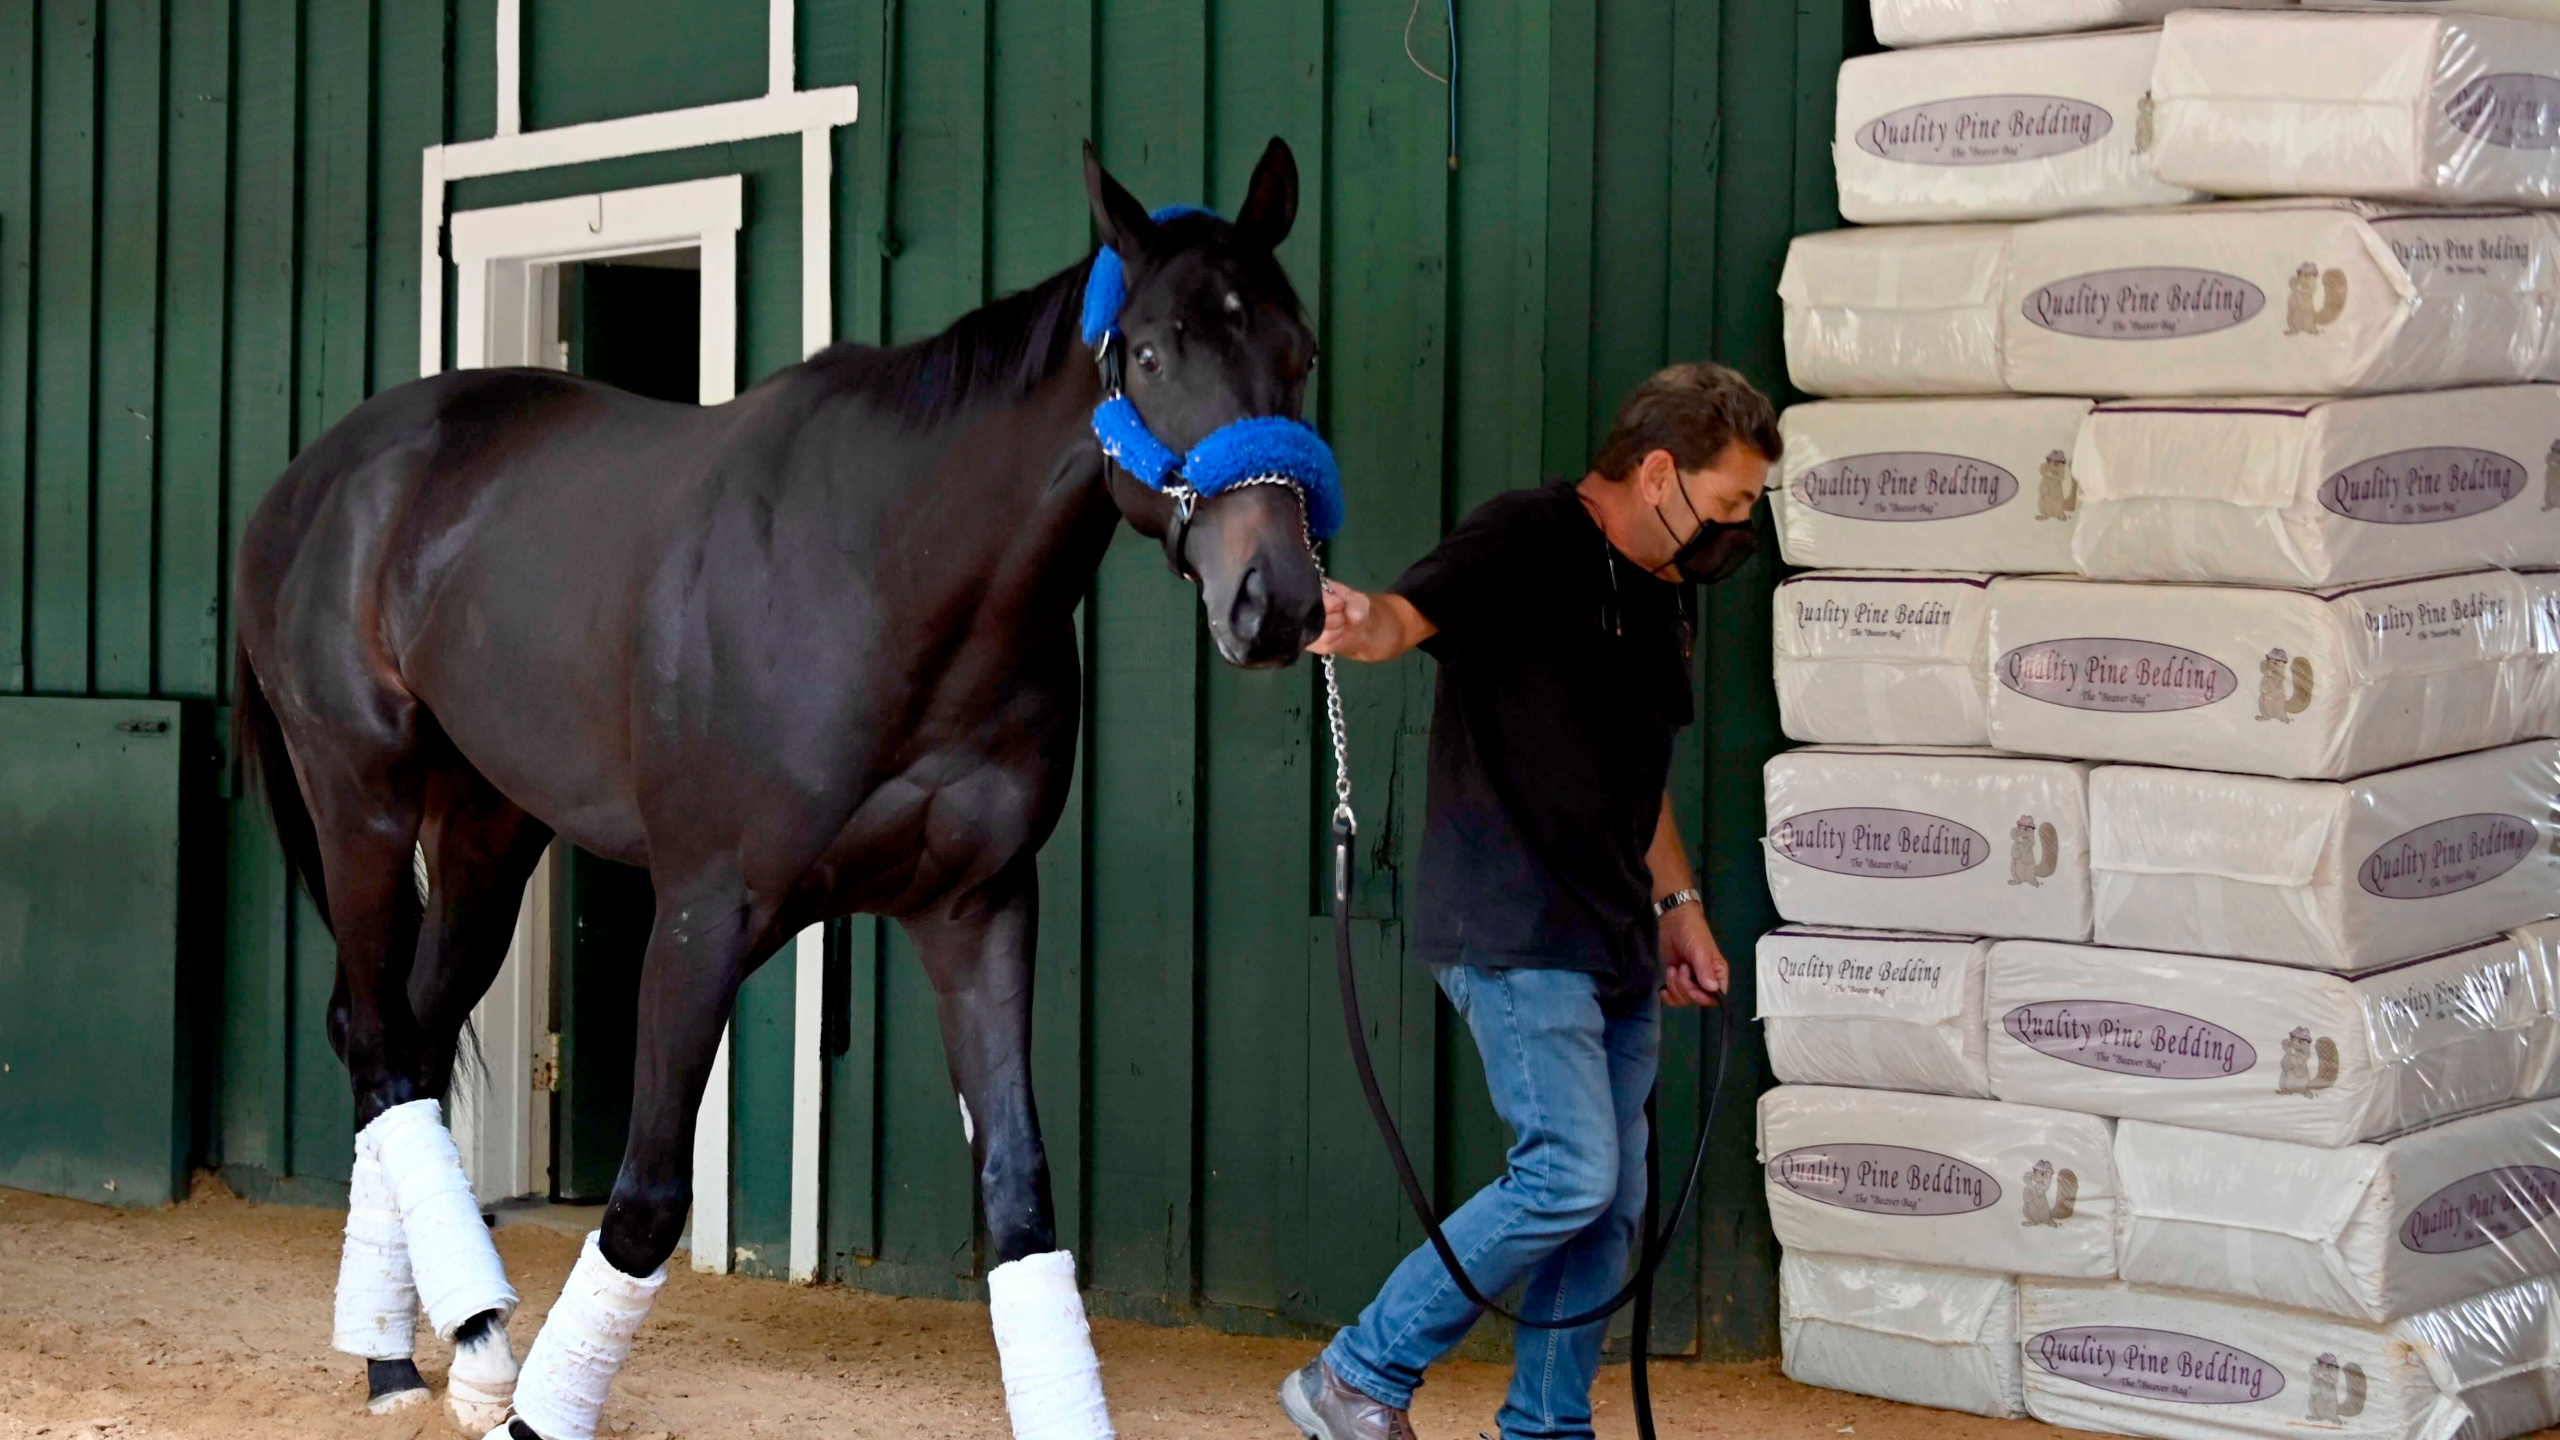 Kentucky Derby winner Medina Spirit walks around the Stakes Barn with assistant trainer Jimmy Barnes after arriving at Pimlico Race Course Monday, May 10, 2021. (Lloyd Fox/The Baltimore Sun via AP)./The Baltimore Sun via AP)